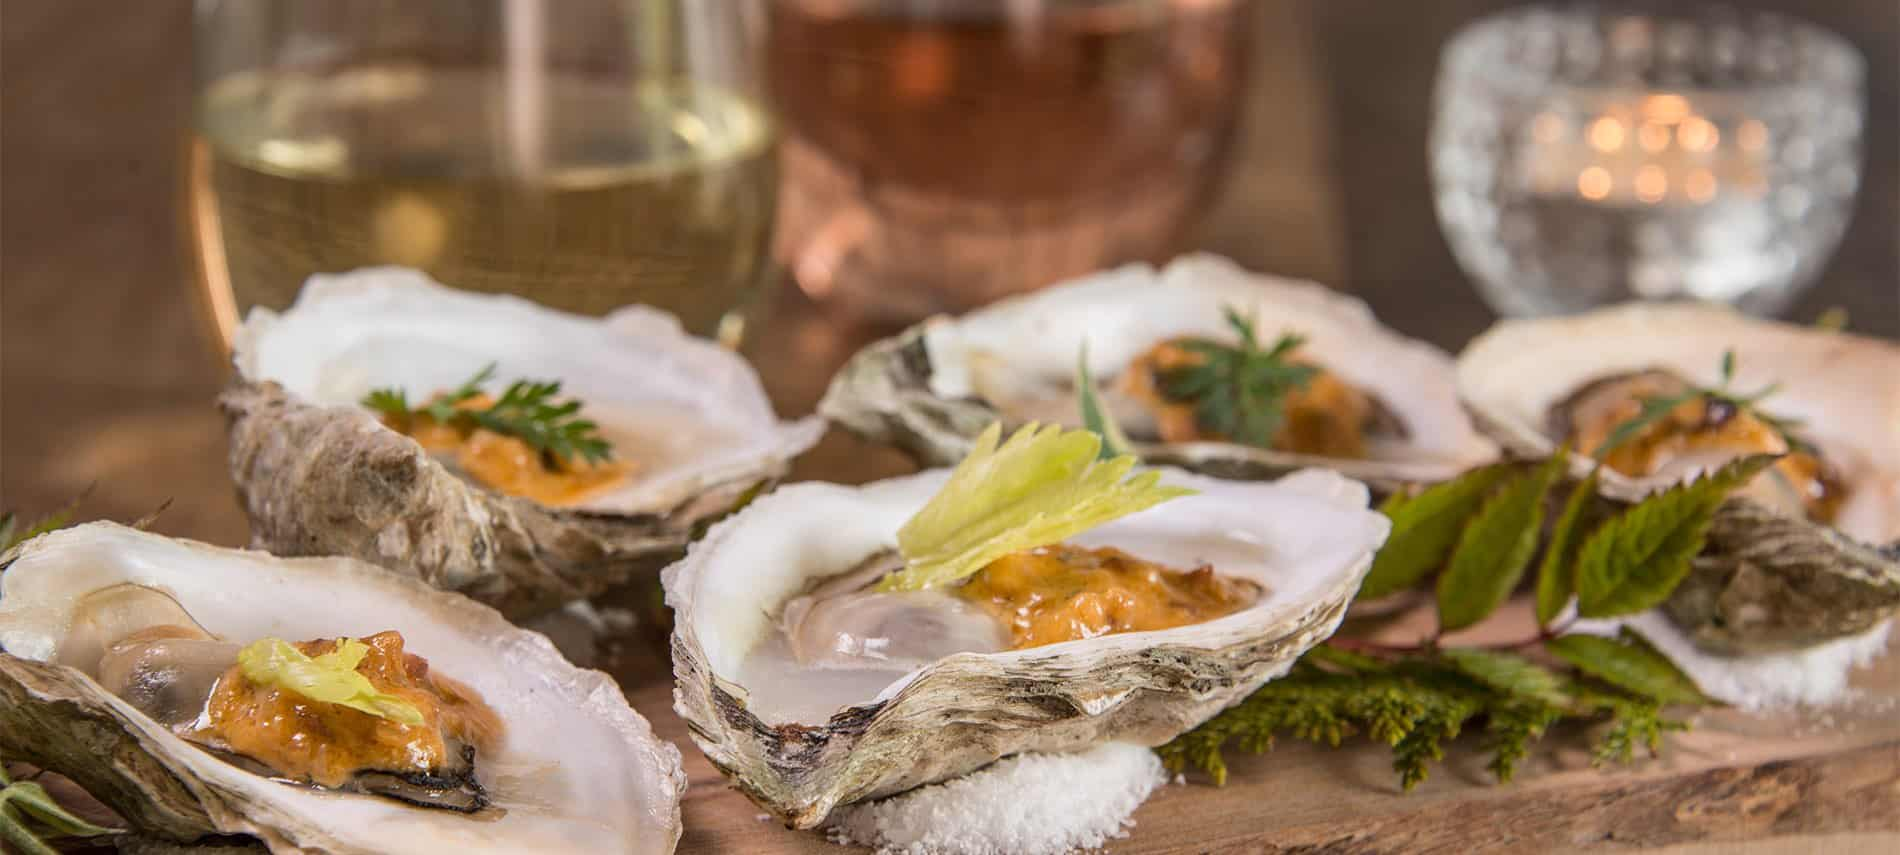 Oysters in shells with fresh herbs and two glasses of wine .